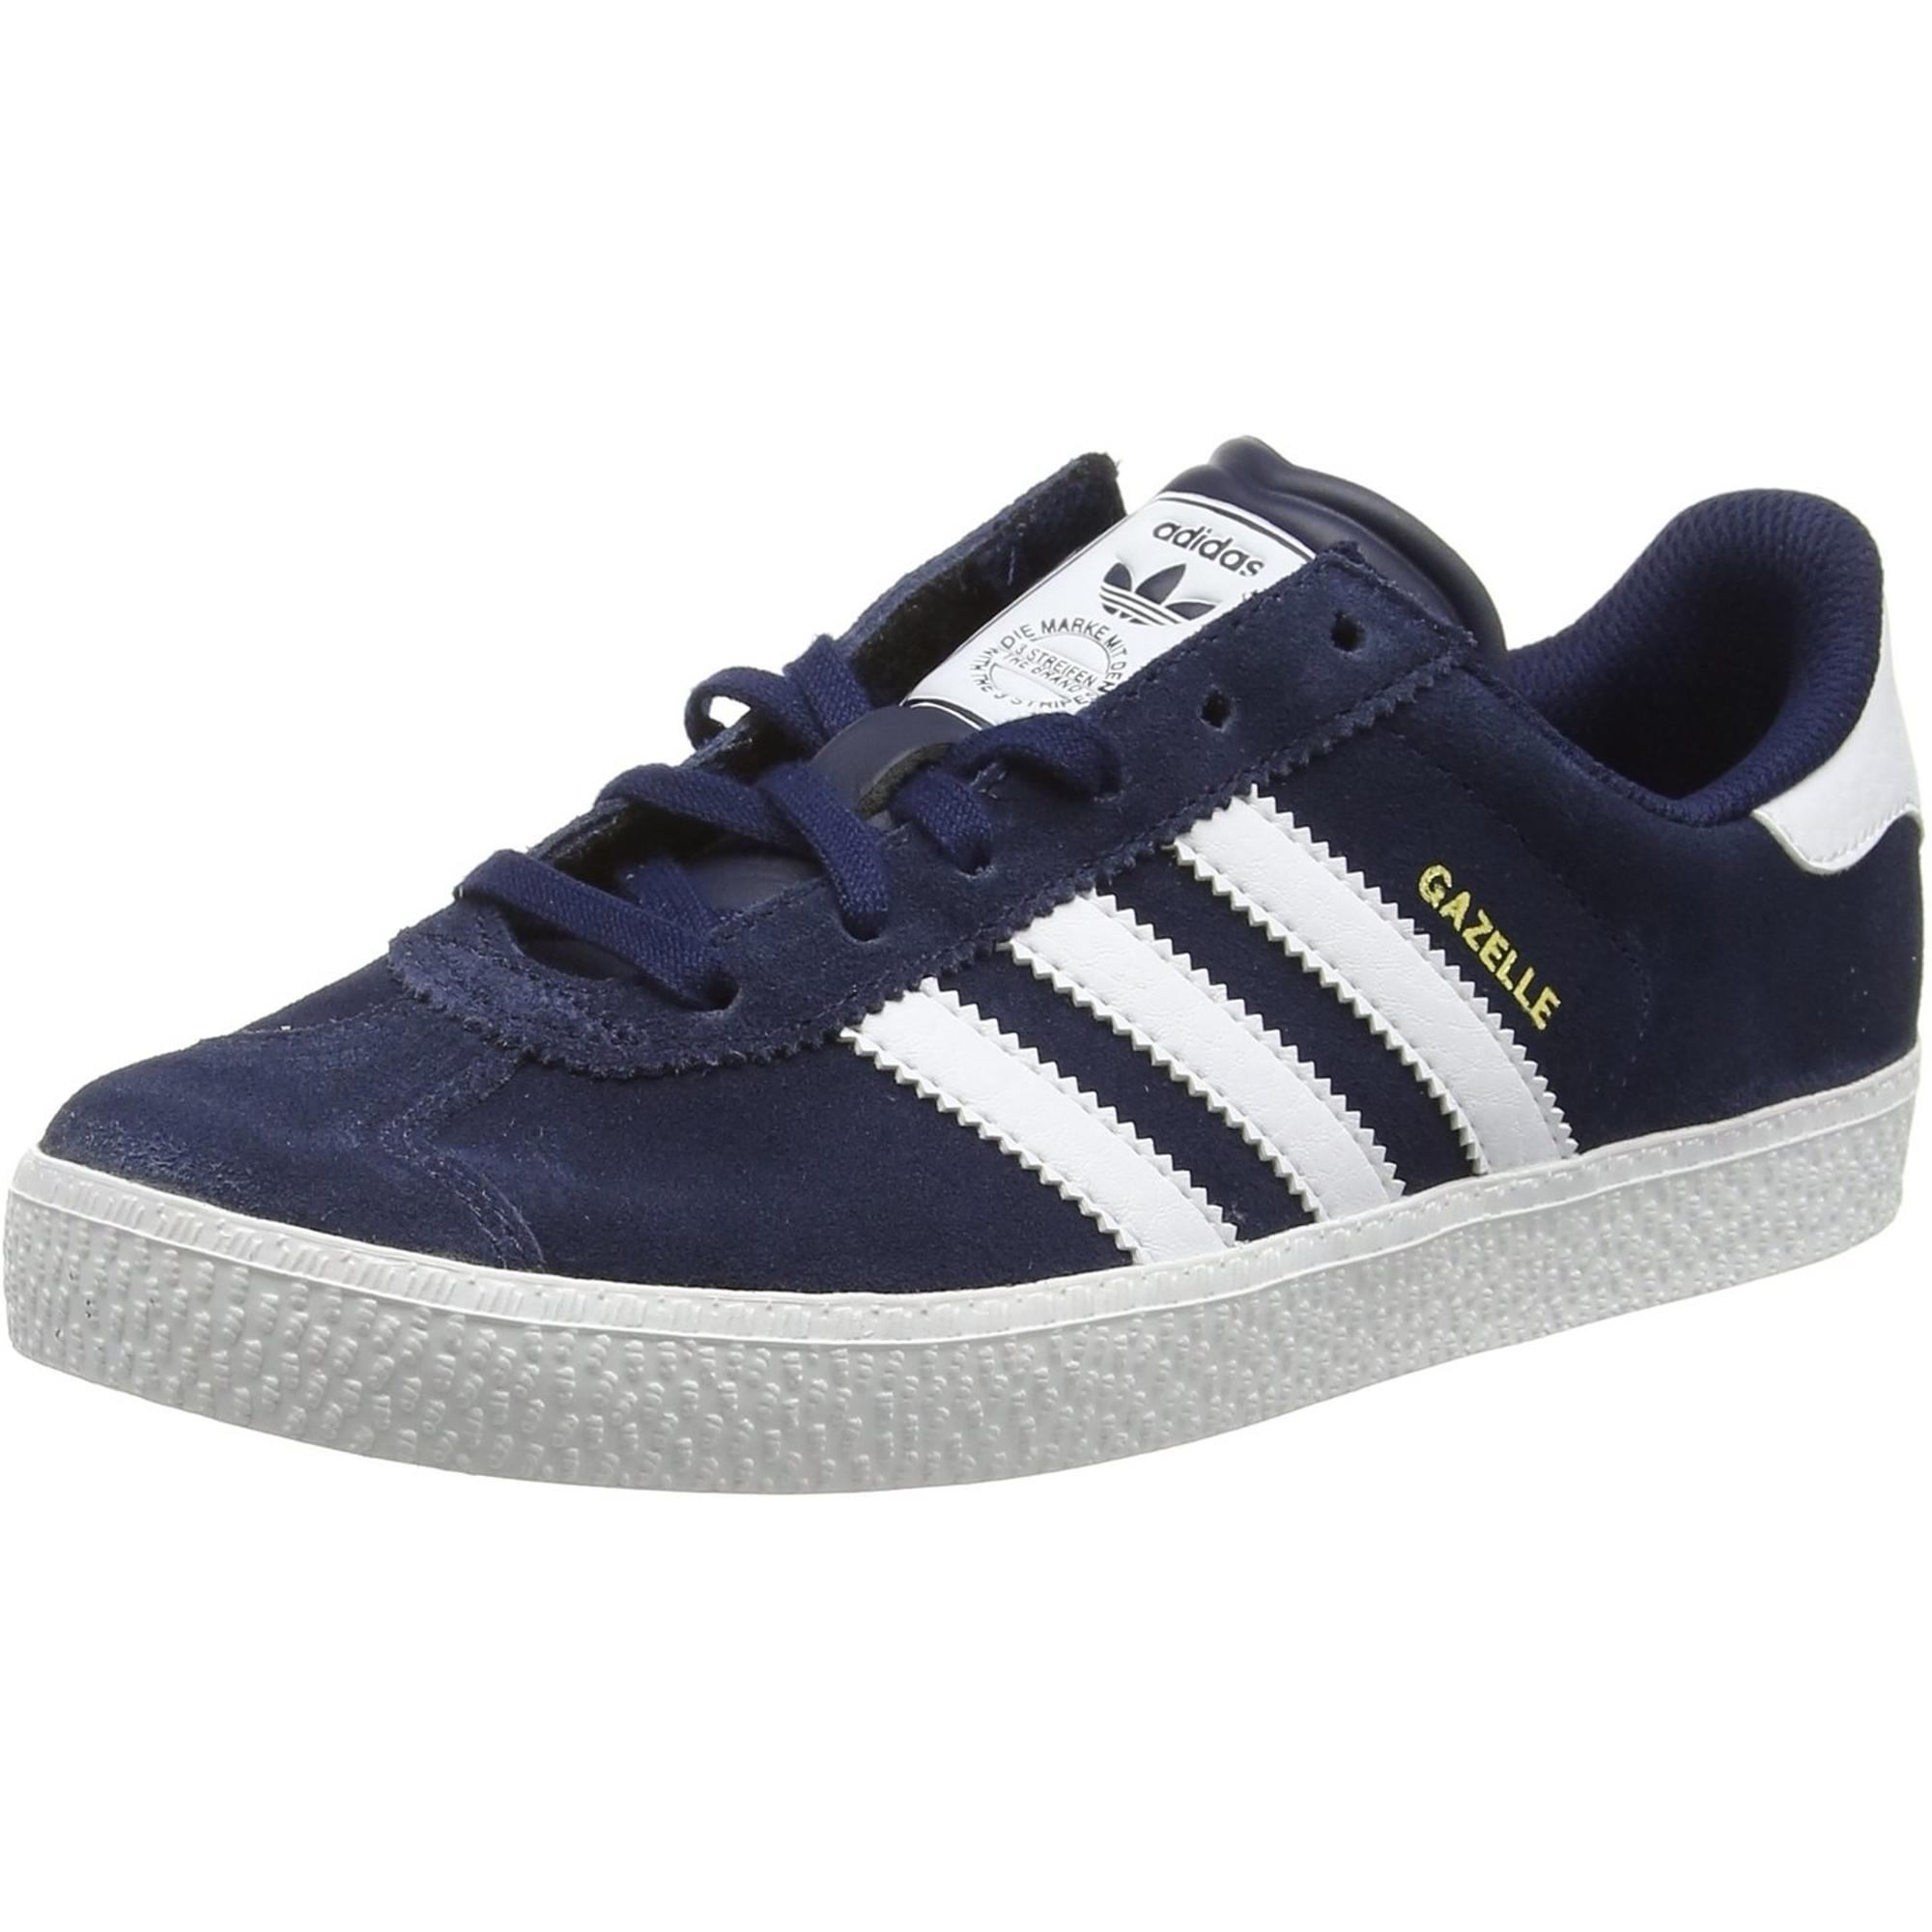 adidas Originals Gazelle 2 J Royal Blue Suede Youth Trainers Shoes